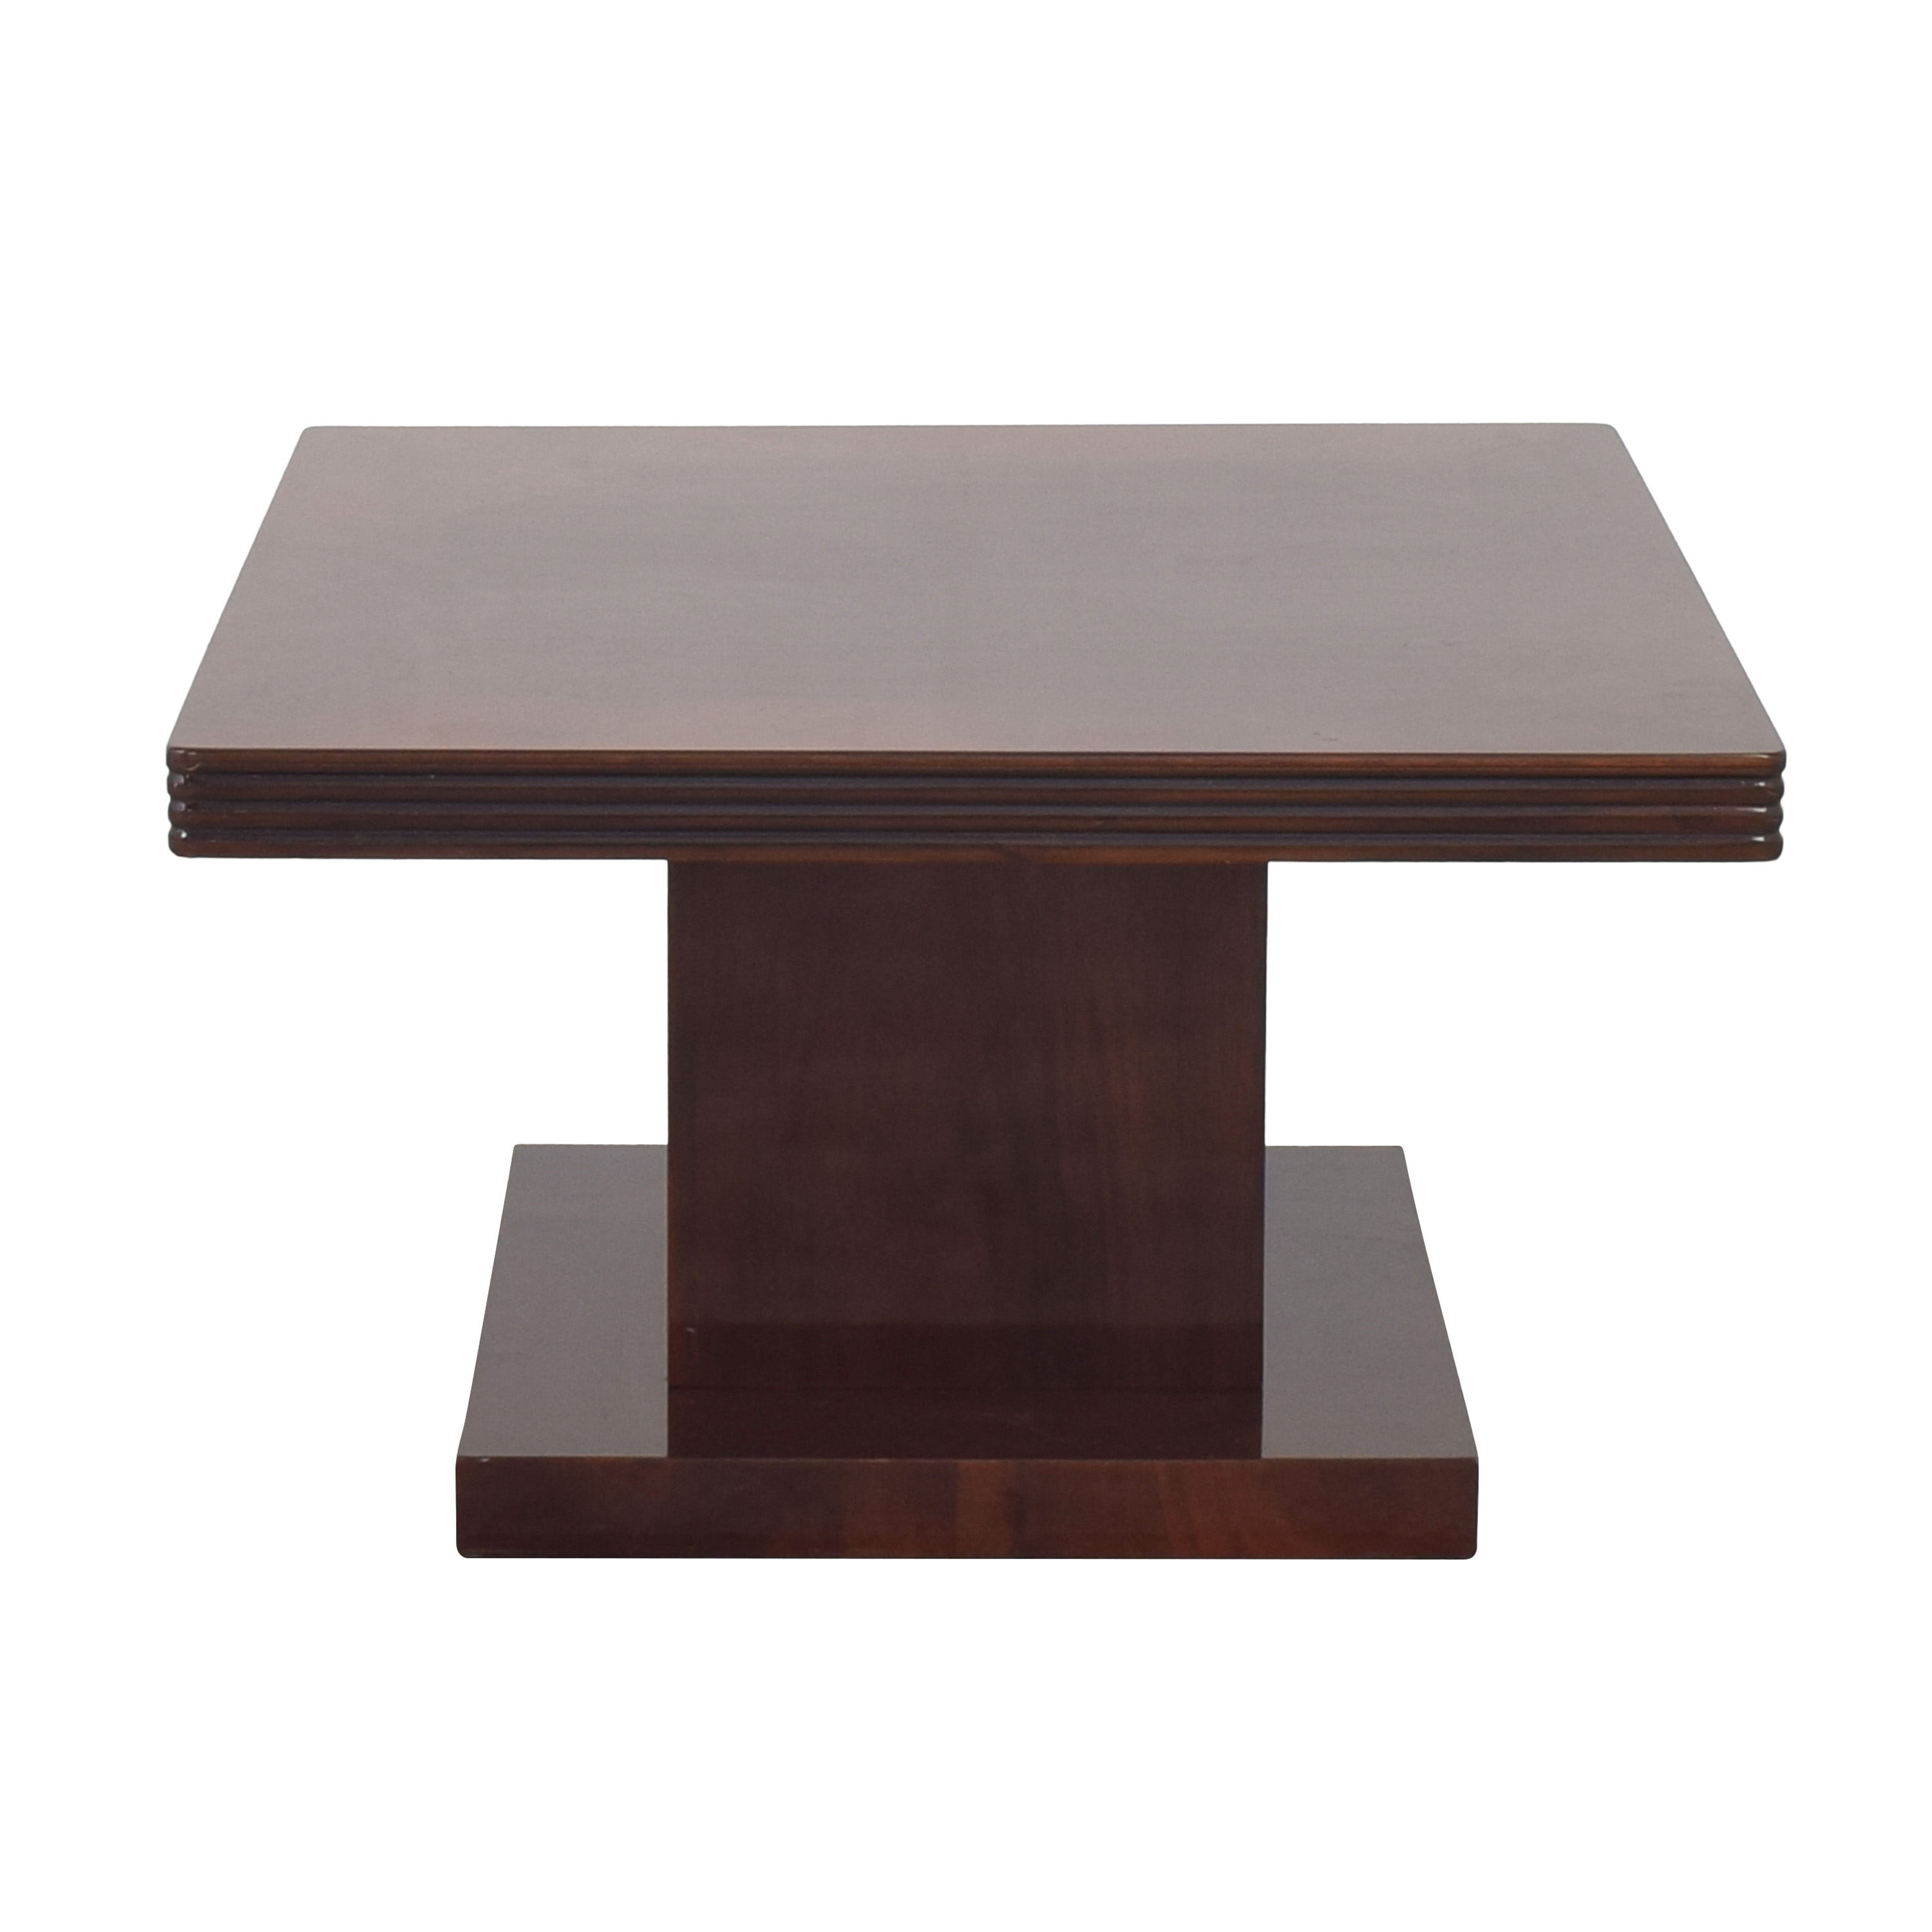 Deco Era Square Coffee Table price